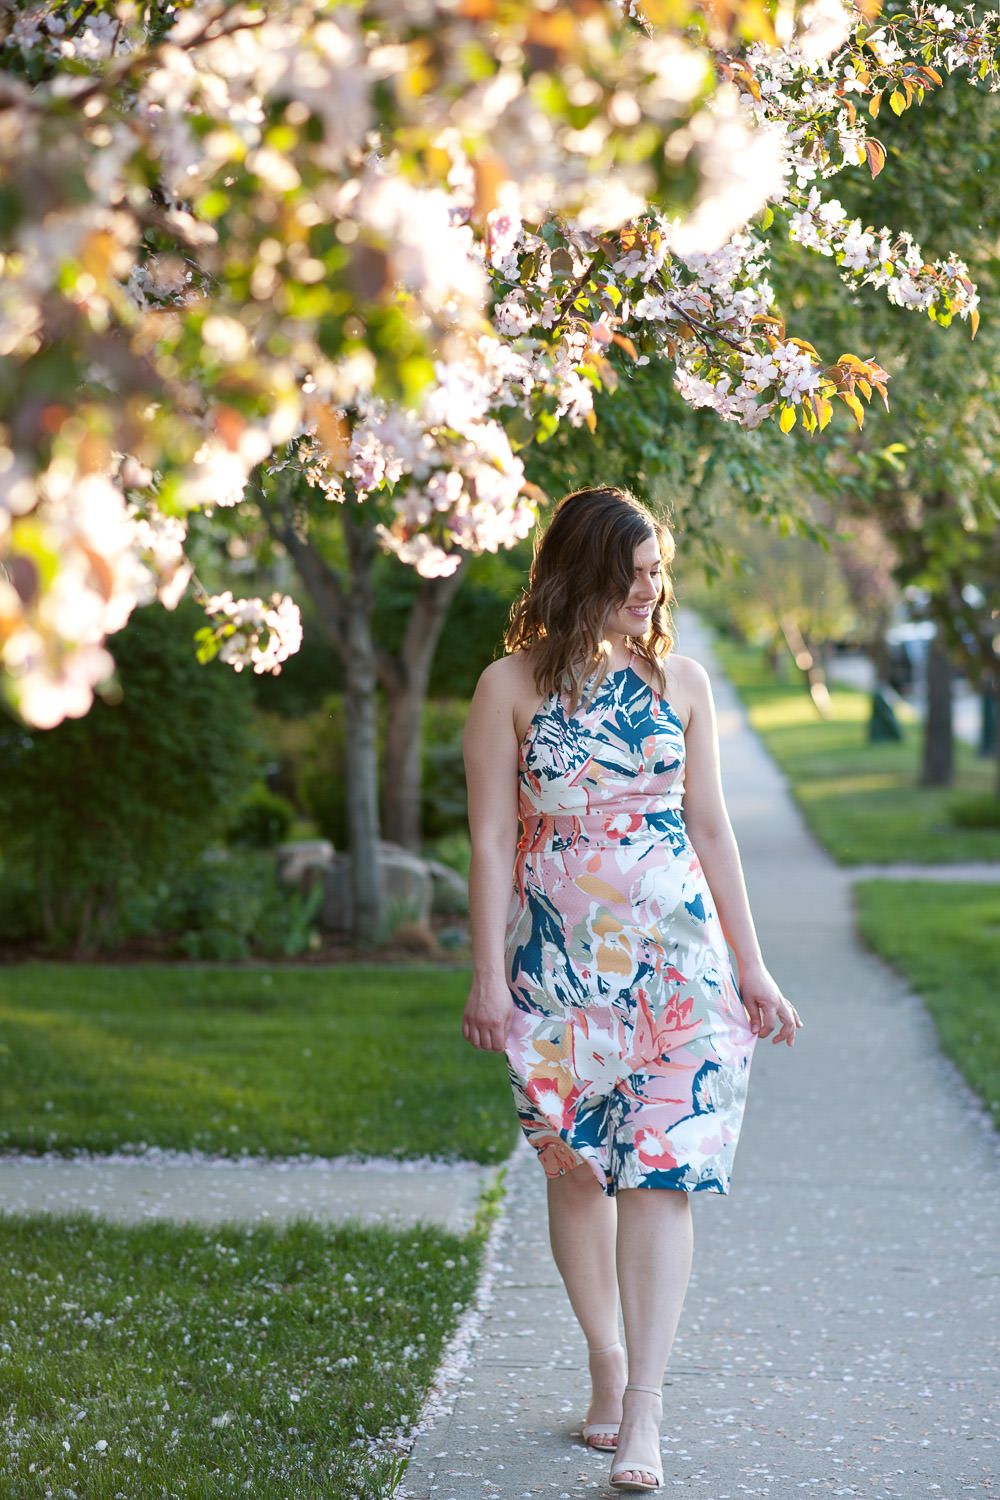 Janelle strolling in cherry blossoms captured by Calgary Lifestyle Photographer Tara Whittaker